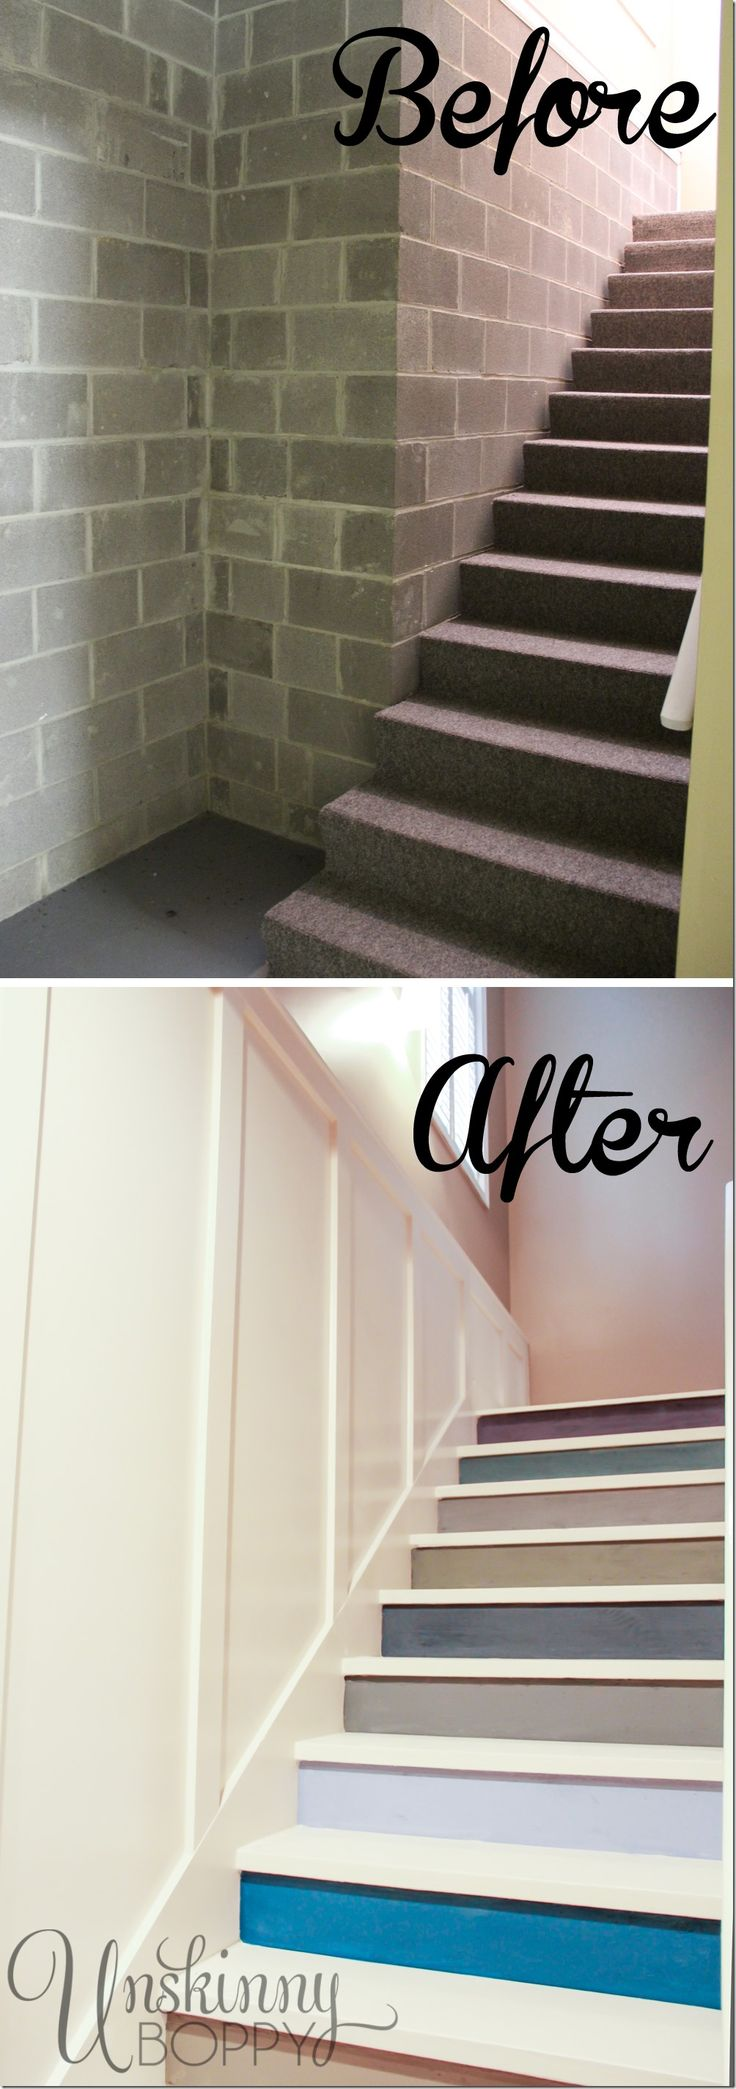 Basement Stairs Ideas best 20+ stairway walls ideas on pinterest | stairwell decorating